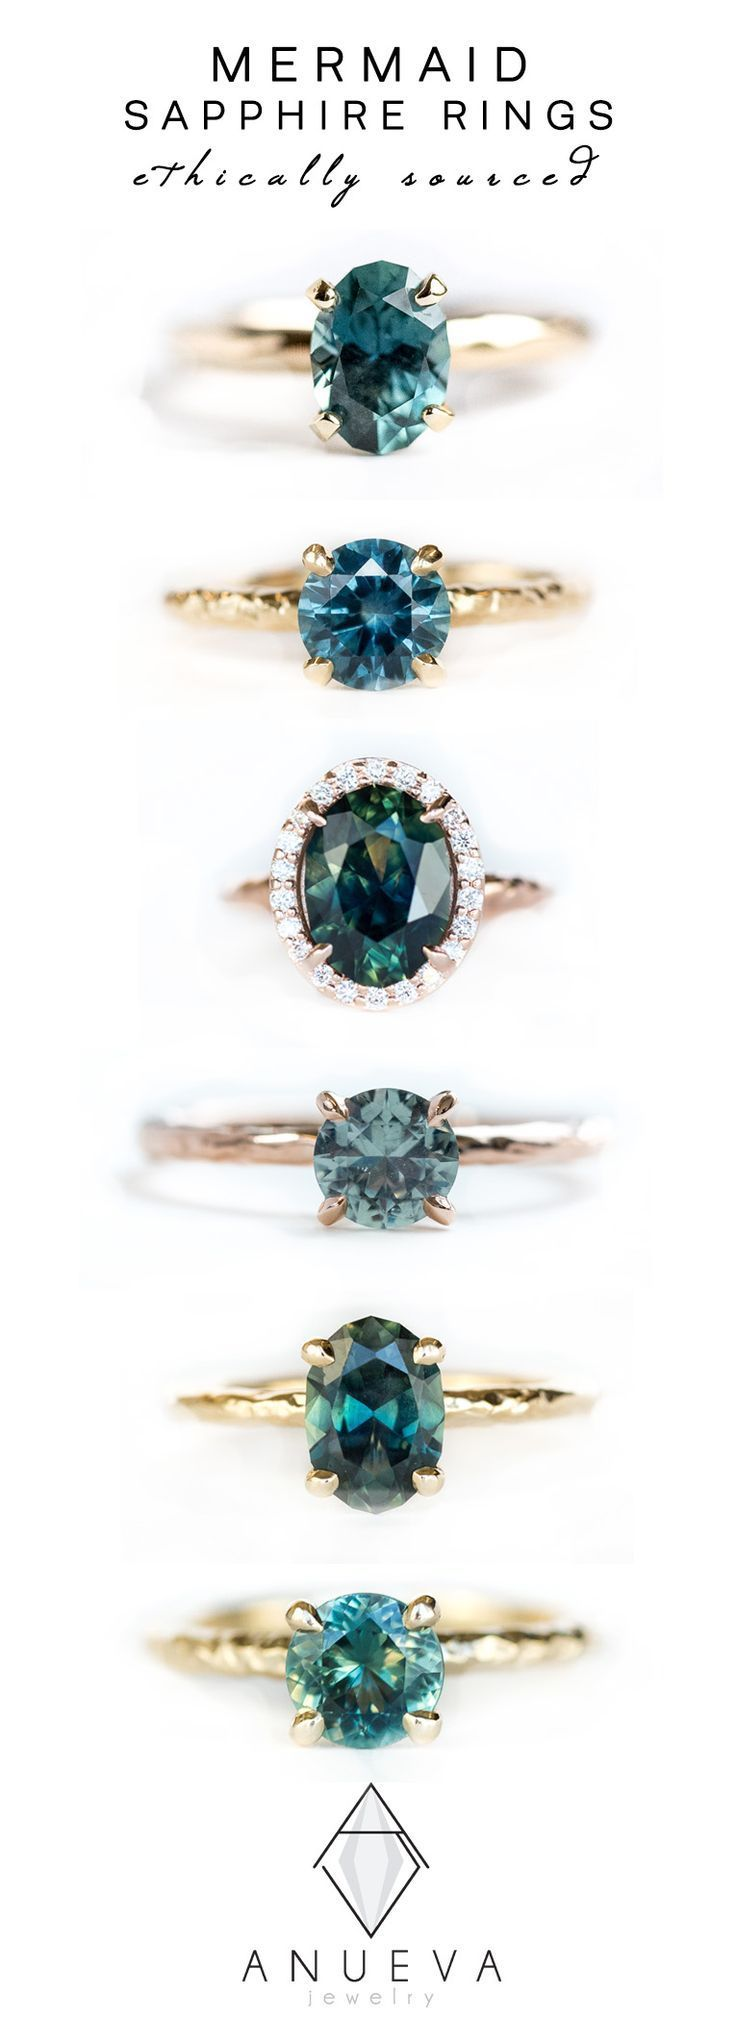 Blue Teal Mermaid Sapphire Rings in Yellow & Rose Gold by Anueva Jewelry – Maureen Mathews